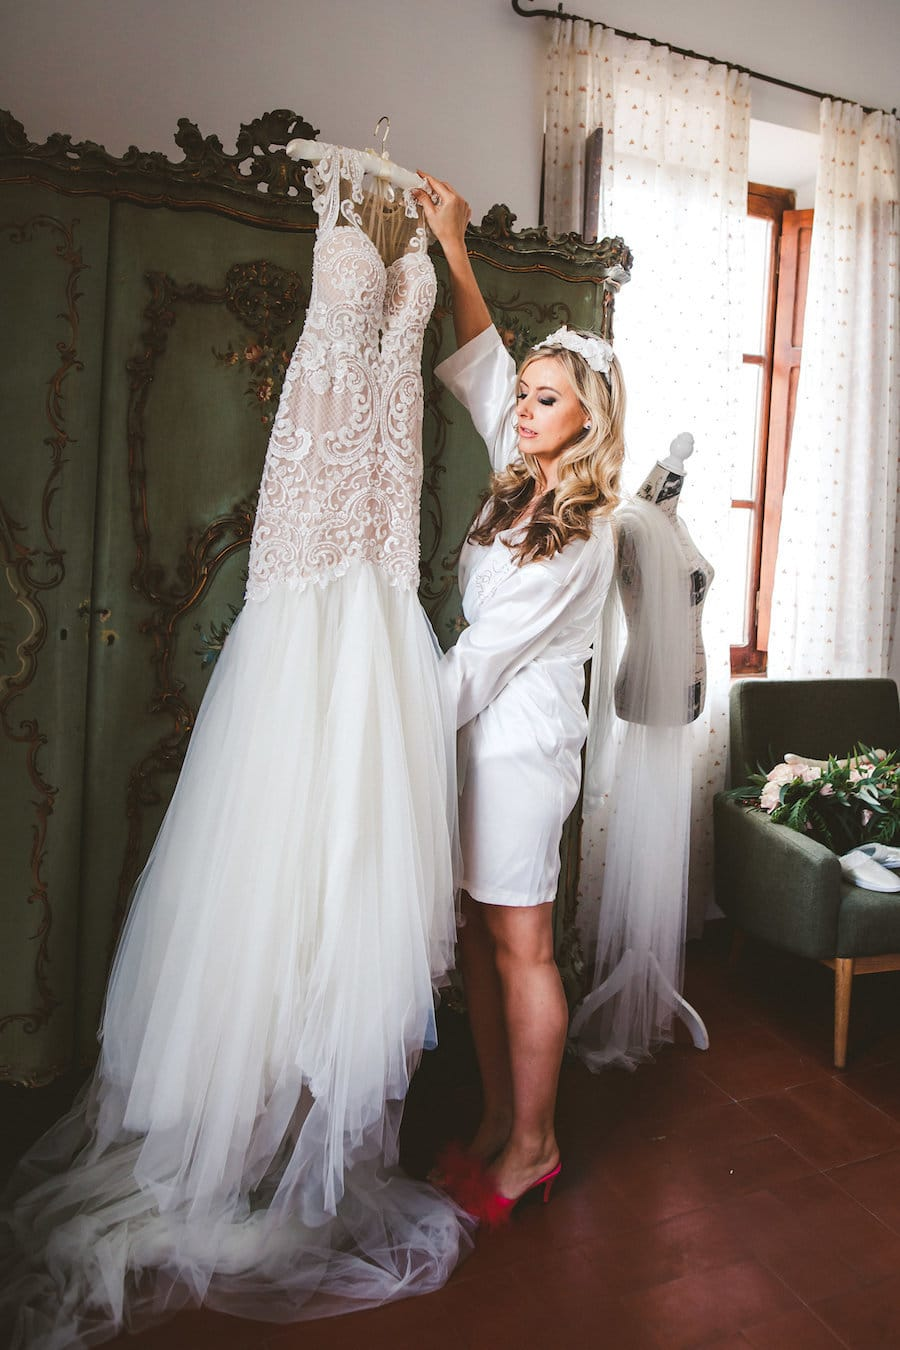 Naama and Anat, Naama and Anat Haute Couture, couture wedding gown, wedding dress, Italian Countryside Wedding, Diva Gown, Peggy Maison Pestea